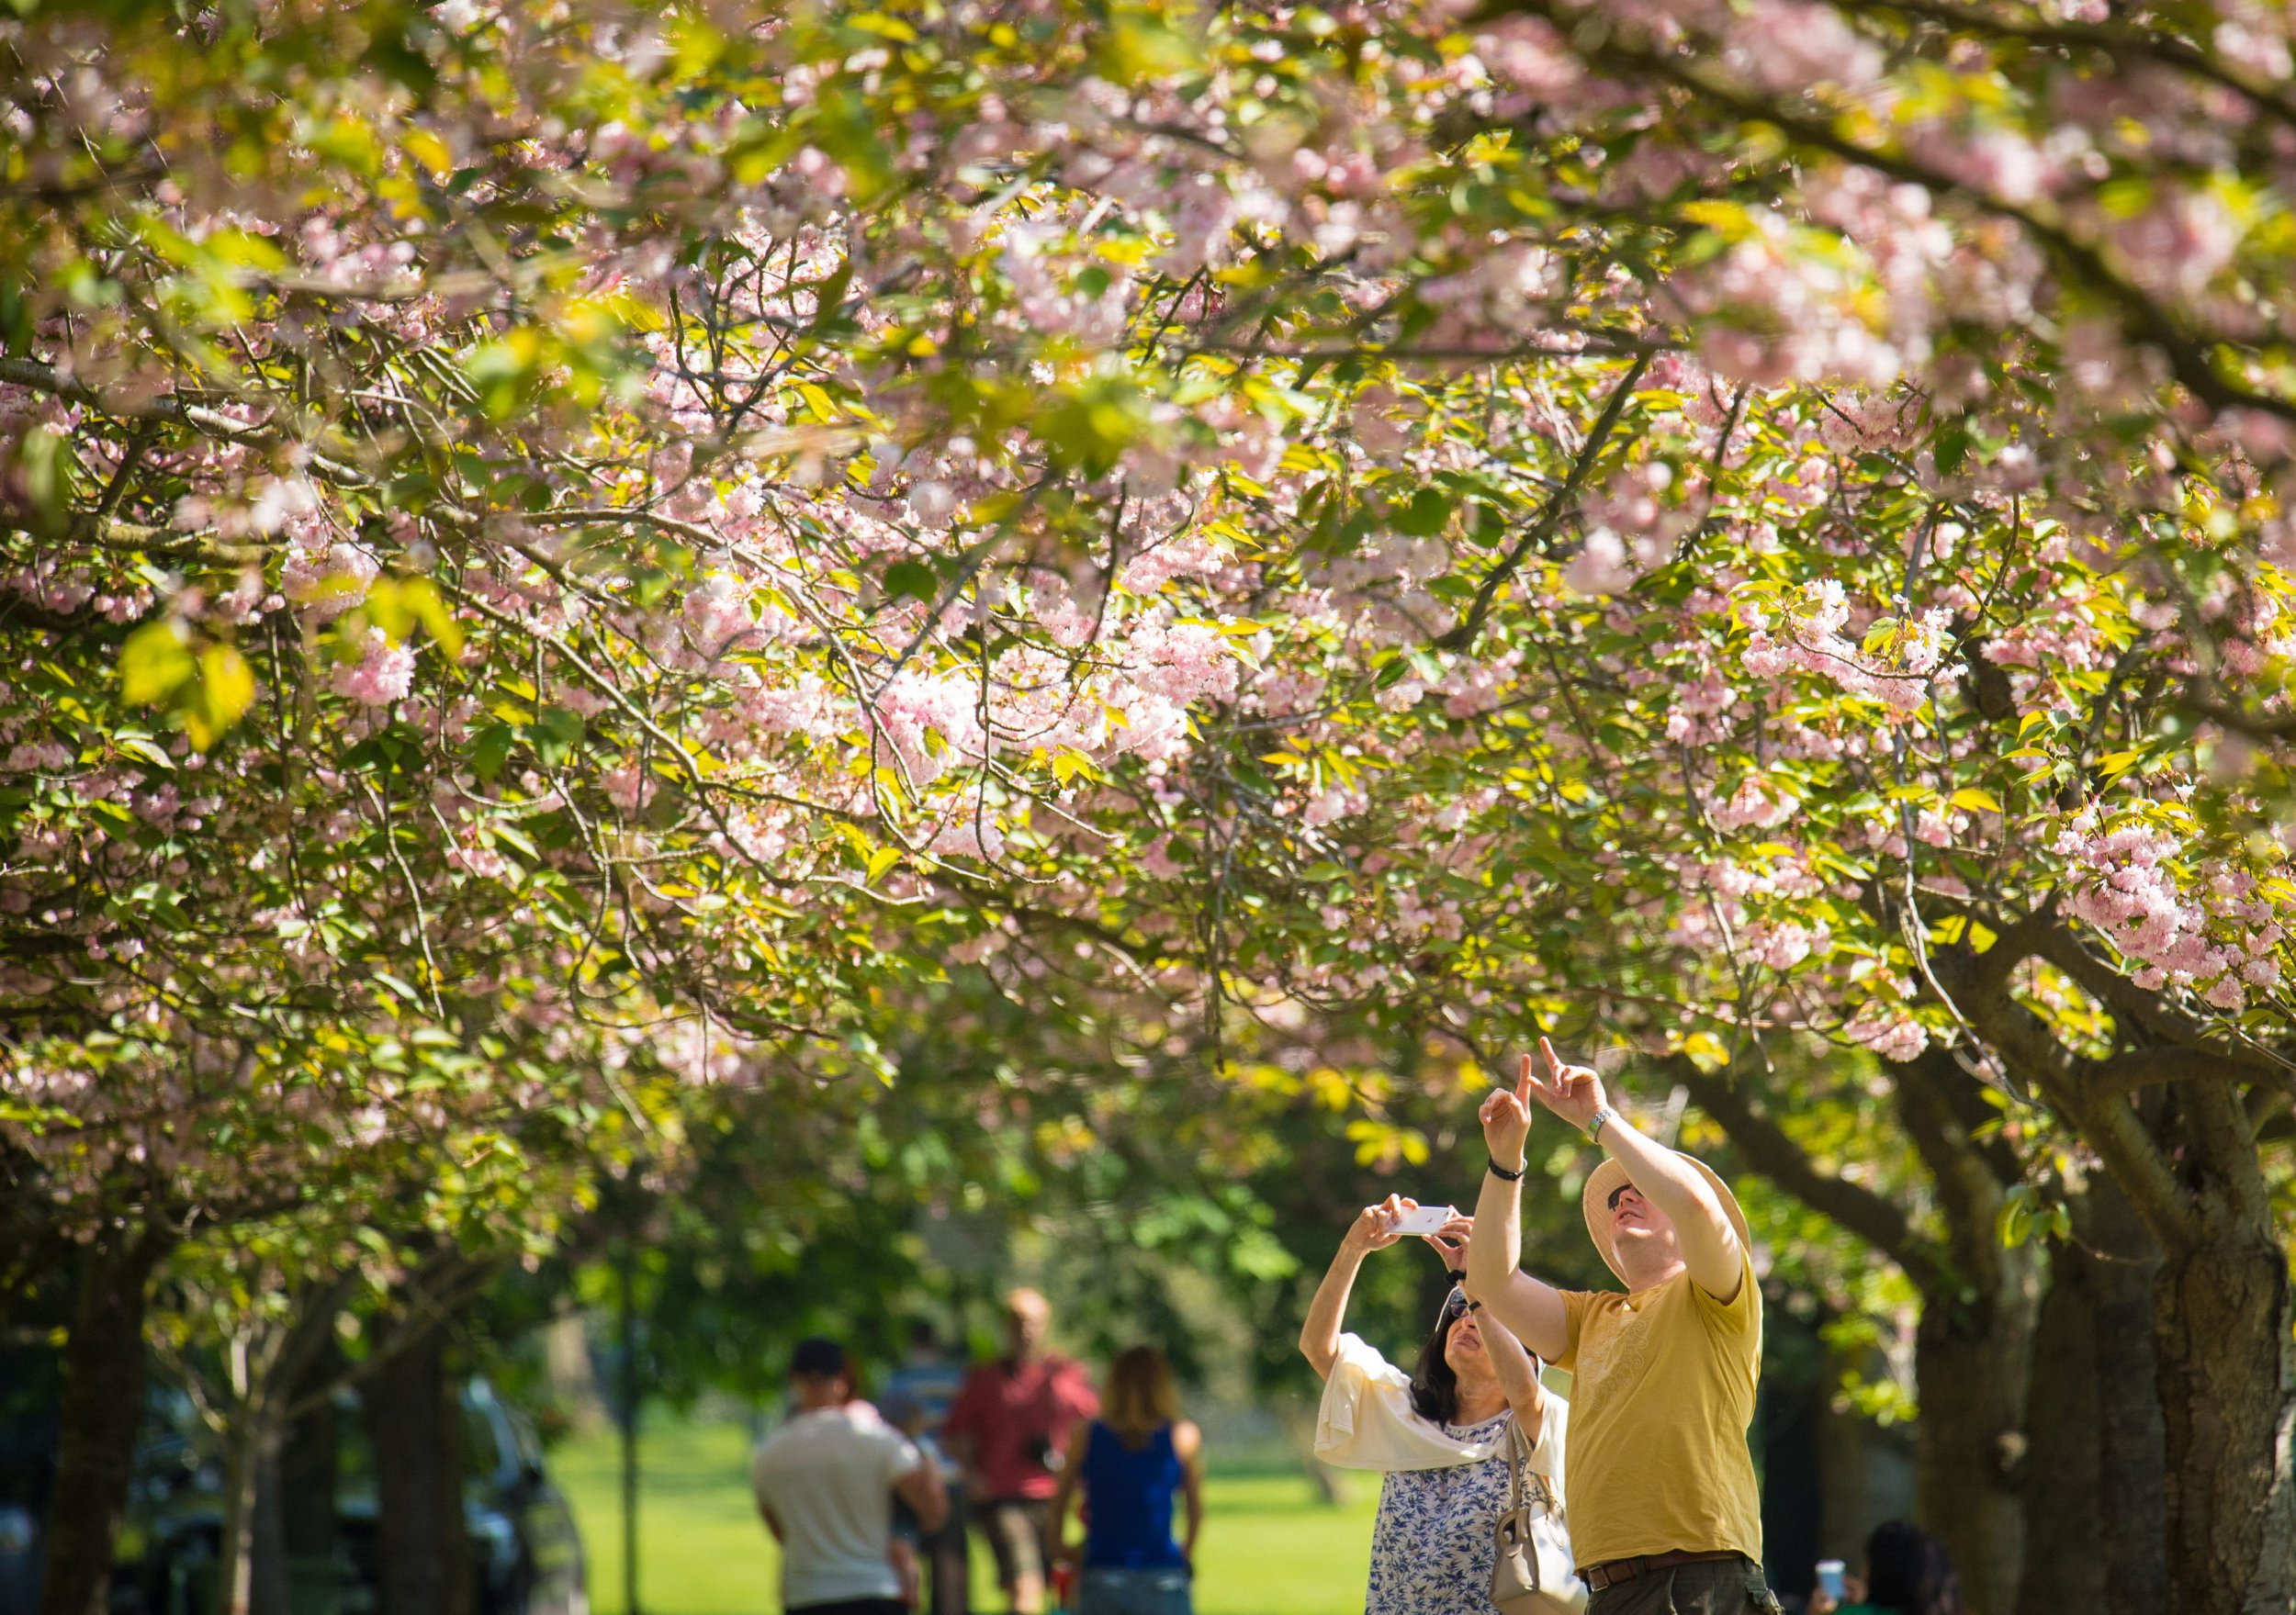 People look at cherry trees in blossom as they enjoy the warm and sunny weather in Greenwich Park, south London, on what is set to be the hottest May Bank Holiday Monday since records began. PRESS ASSOCIATION Photo. Picture date: Monday May 7, 2018. See PA story WEATHER Hot. Photo credit should read: Dominic Lipinski/PA Wire